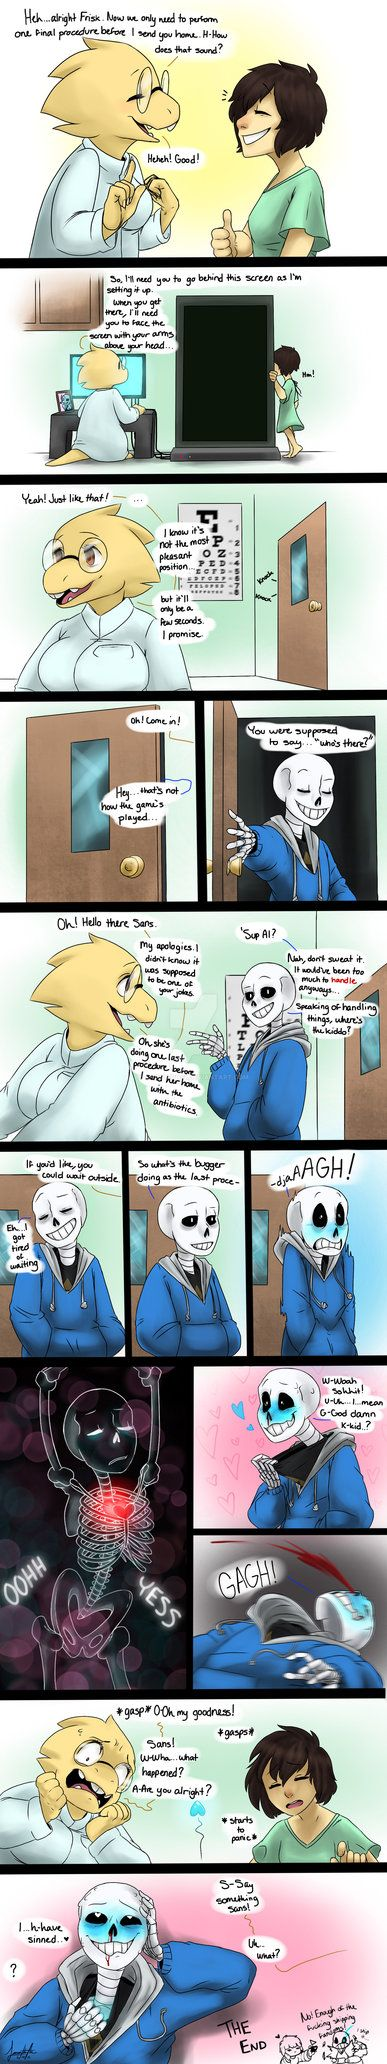 Doctor's Check Up: Undertale by Animorphs1 <<< I don't ship it but I like this comic!